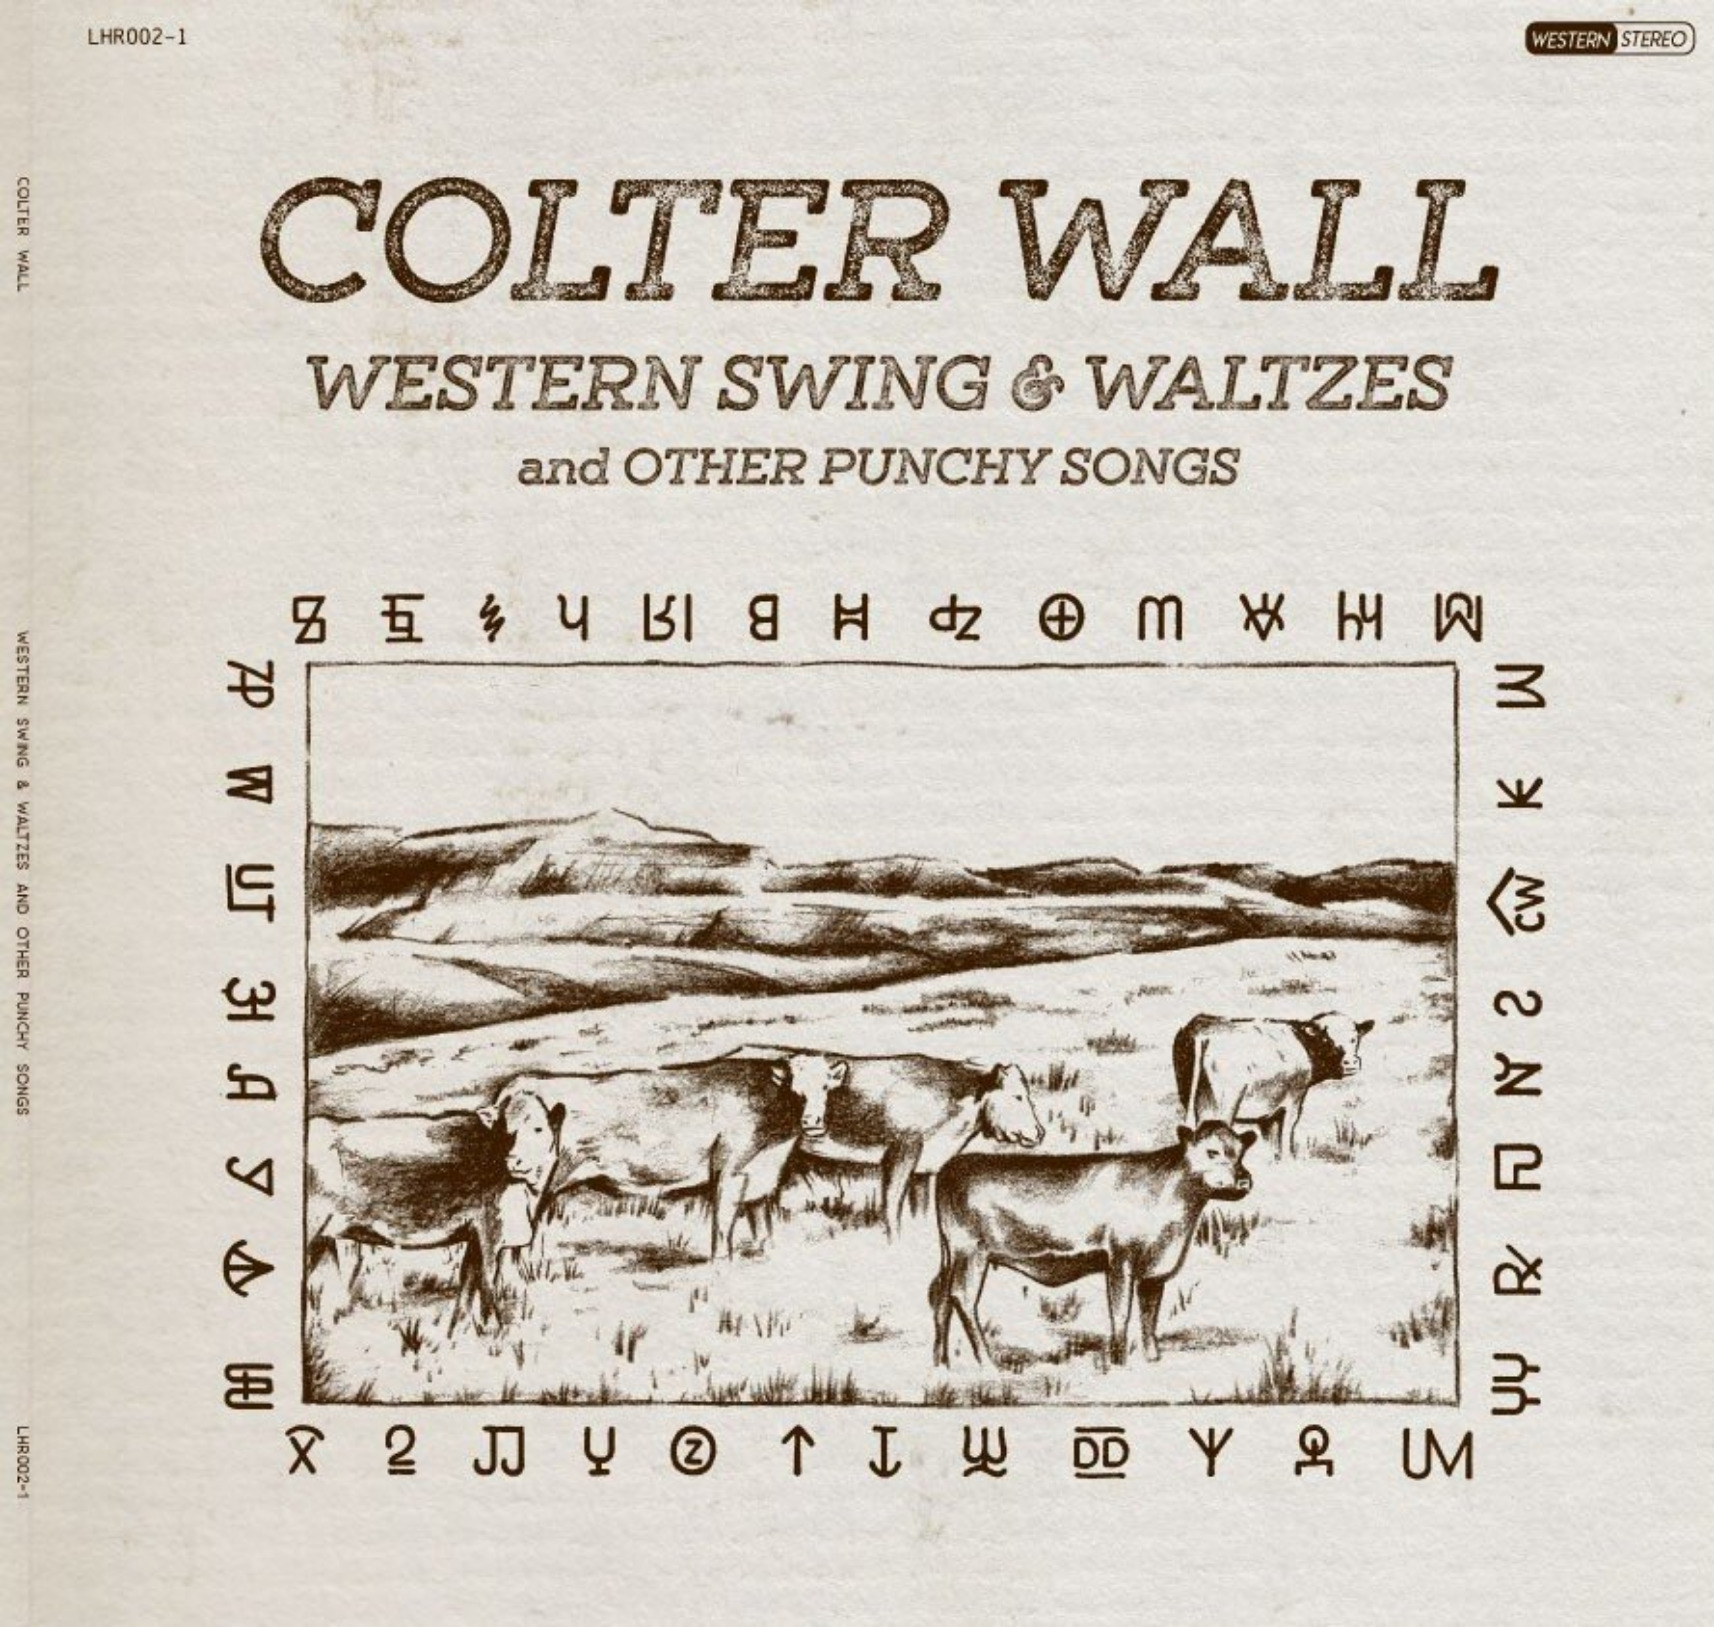 Colter Wall Releases Western Swing & Waltzes and Other Punchy Songs